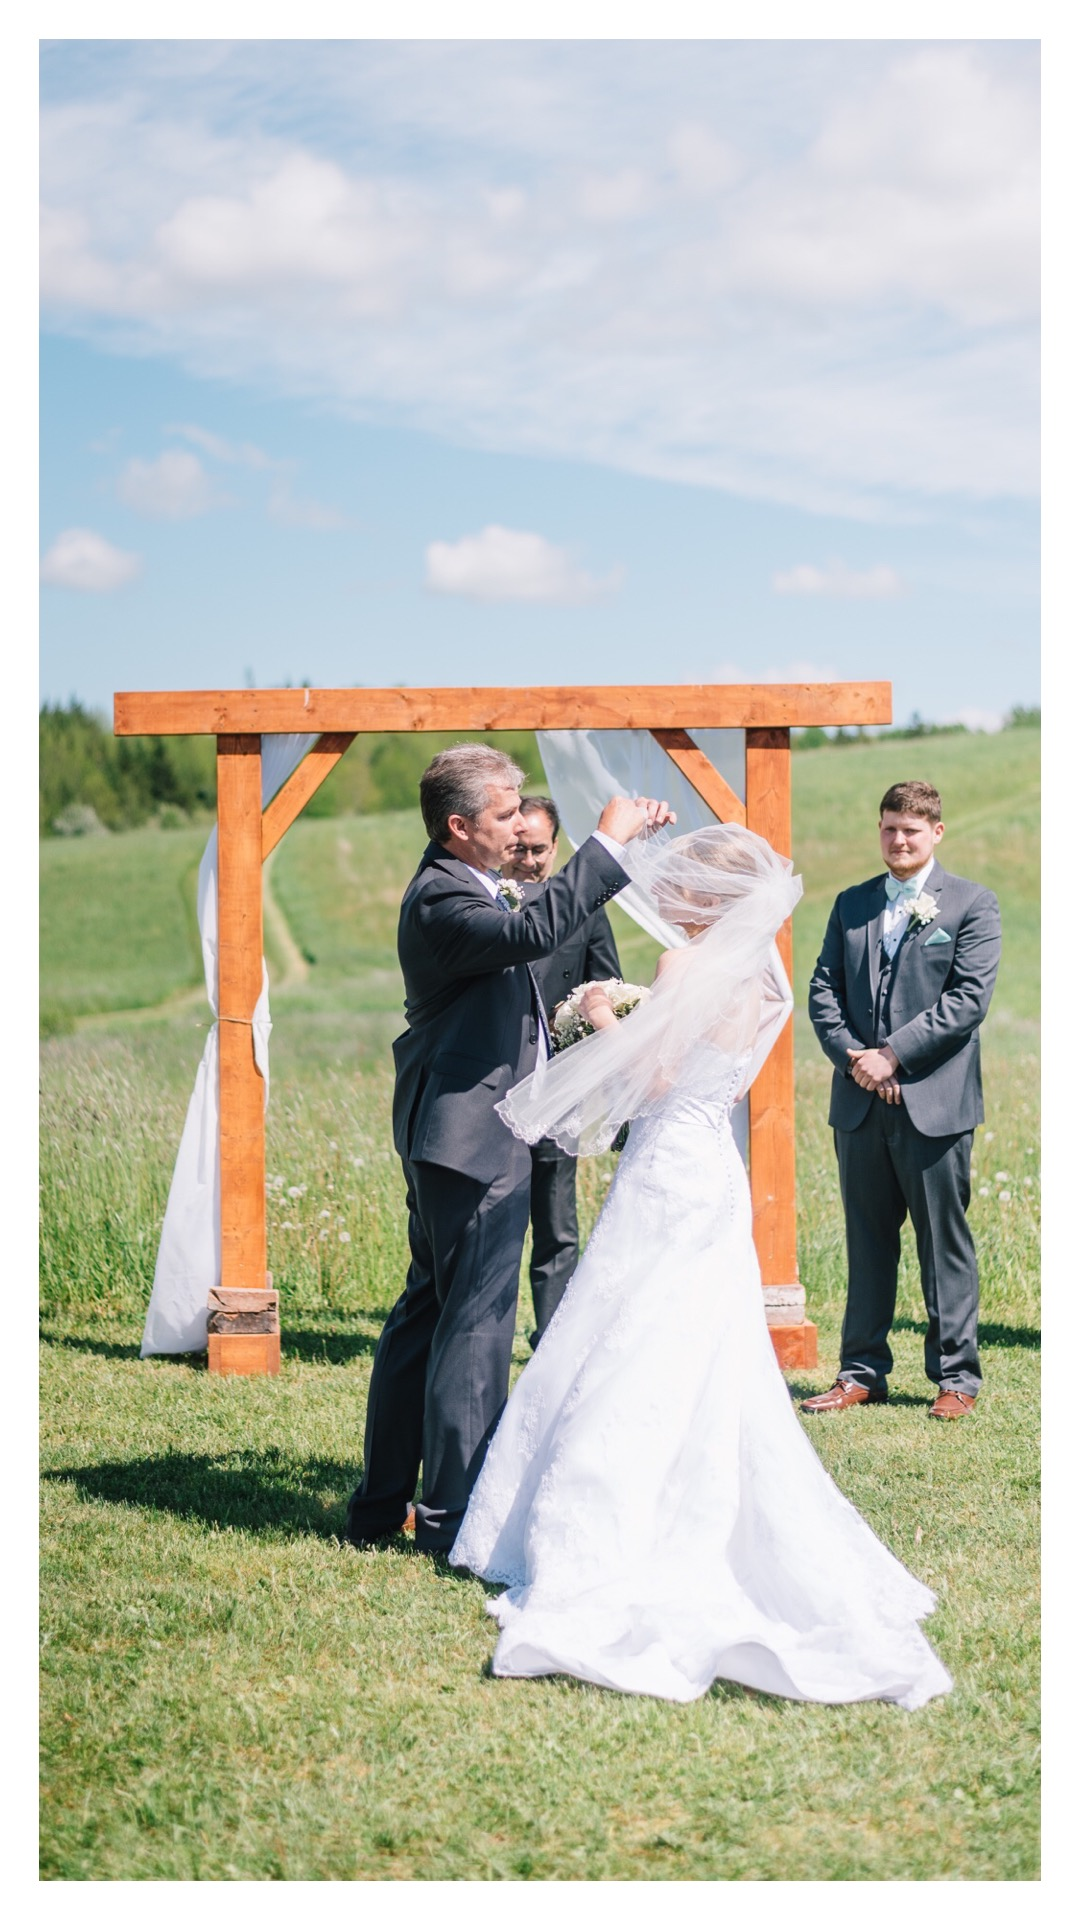 Sneak Peek from Kirsten & Brayden's Sunny Rural Wedding in Pictou County | Halifax Wedding Photographer